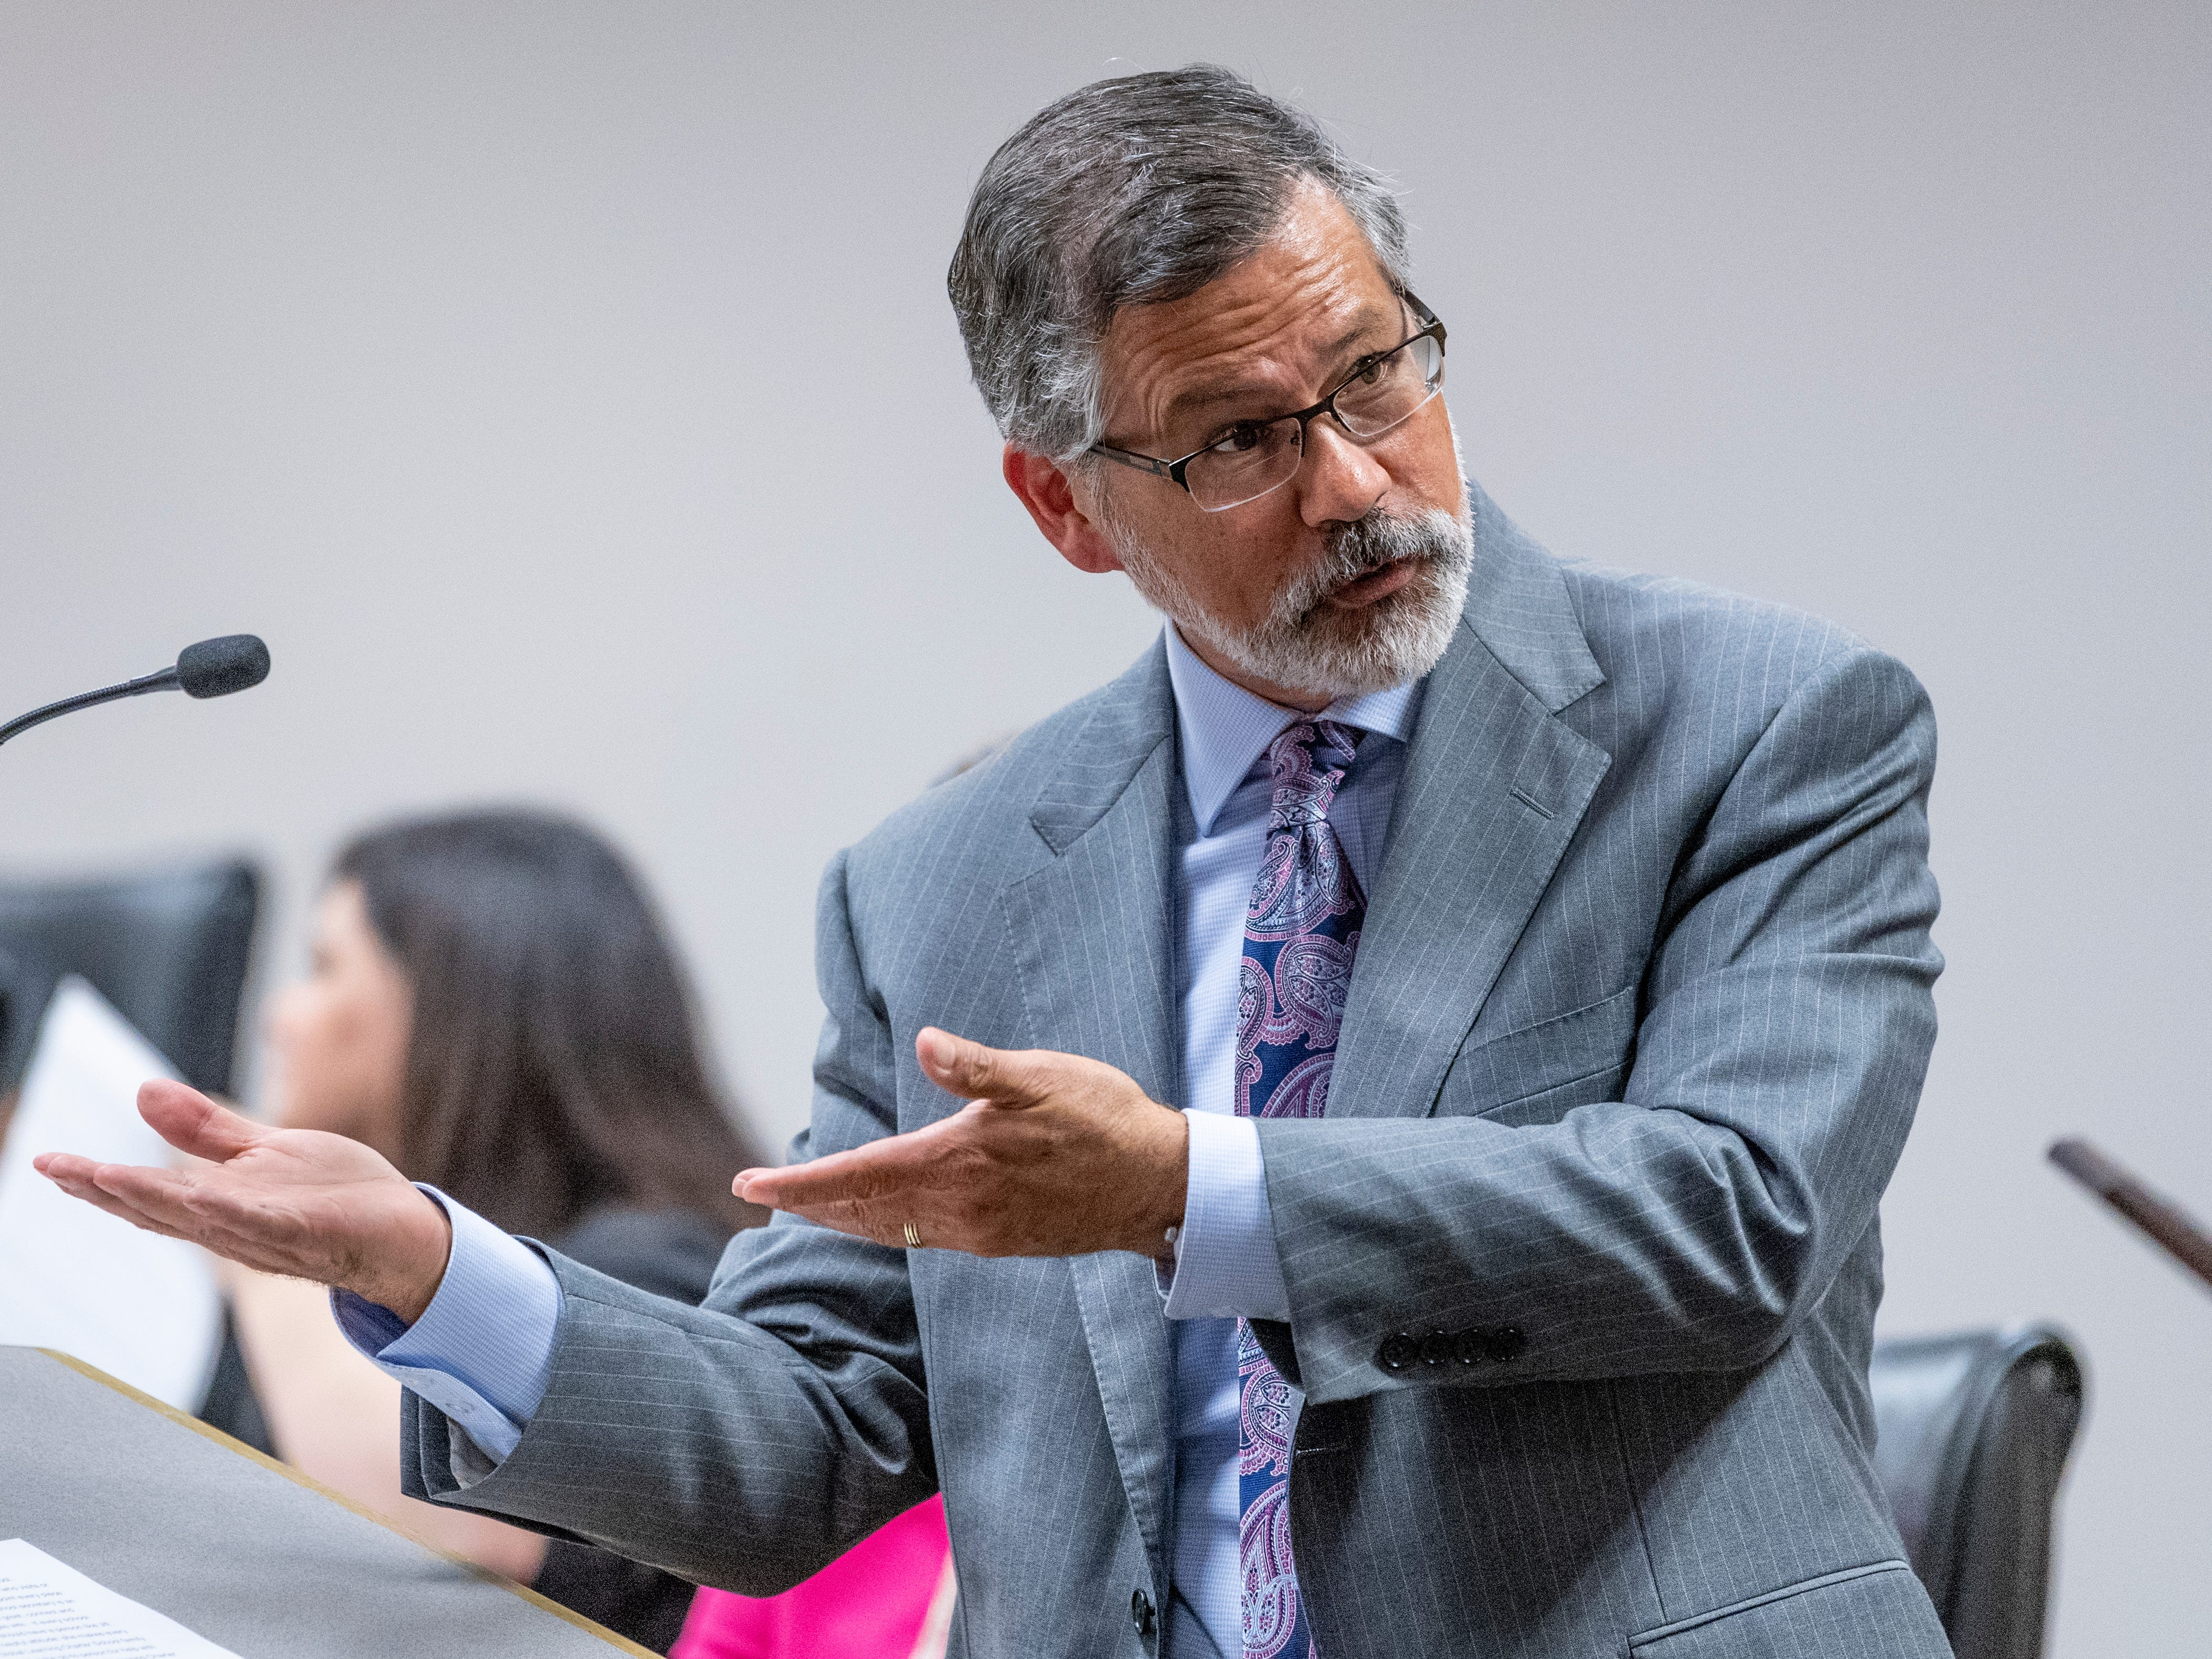 Superintendent Todd Oto announces teachers of the year during a Visalia Unified School board meeting on Tuesday, May 7, 2019.